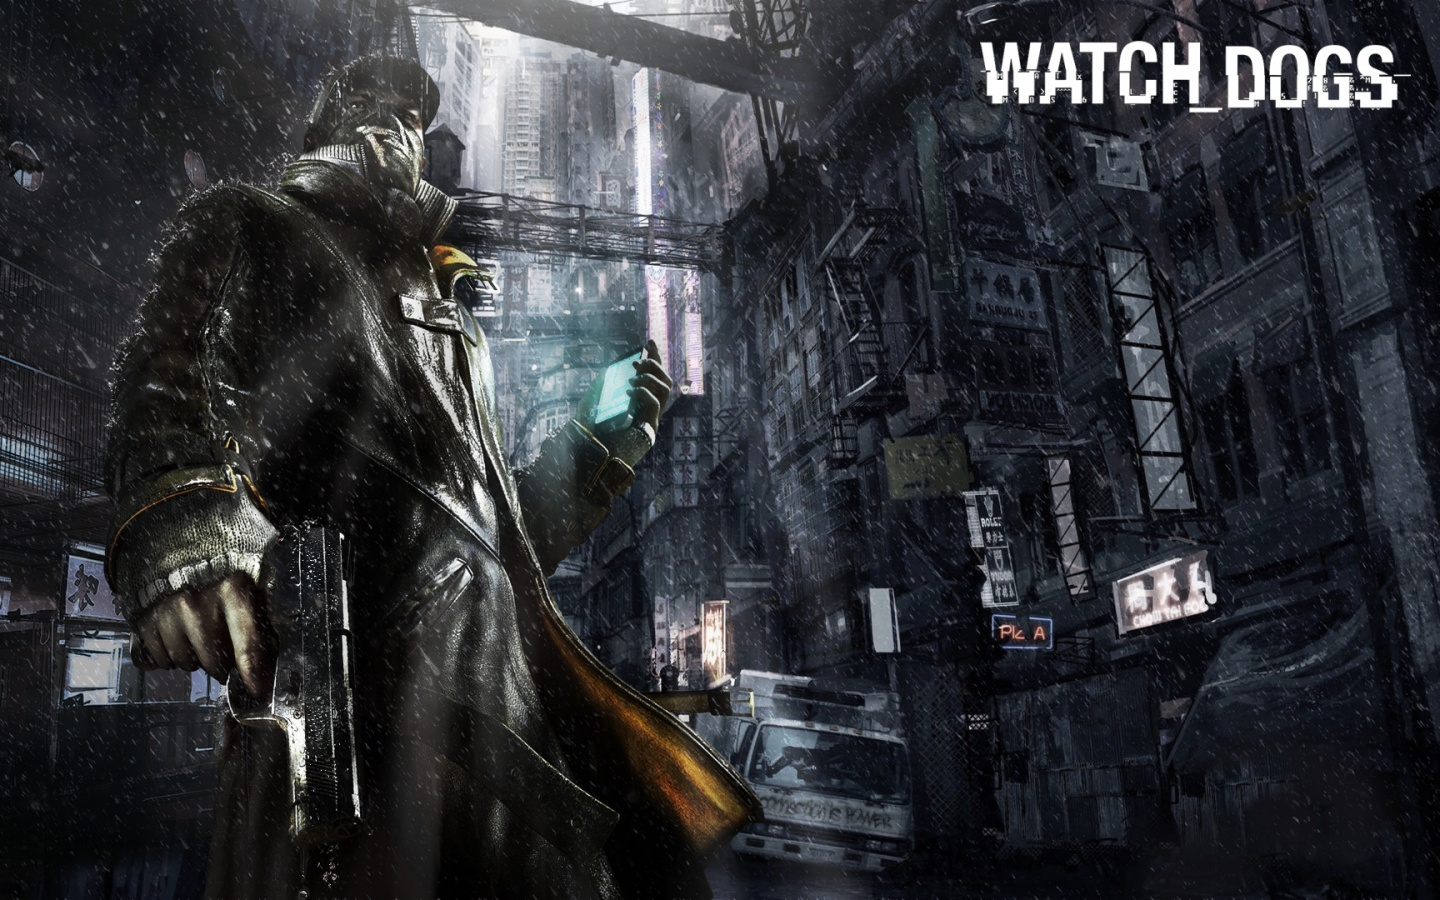 The Art Of Watch Dogs | Animation Lead Lars Bonde On Bringing Watch Dogs To Life